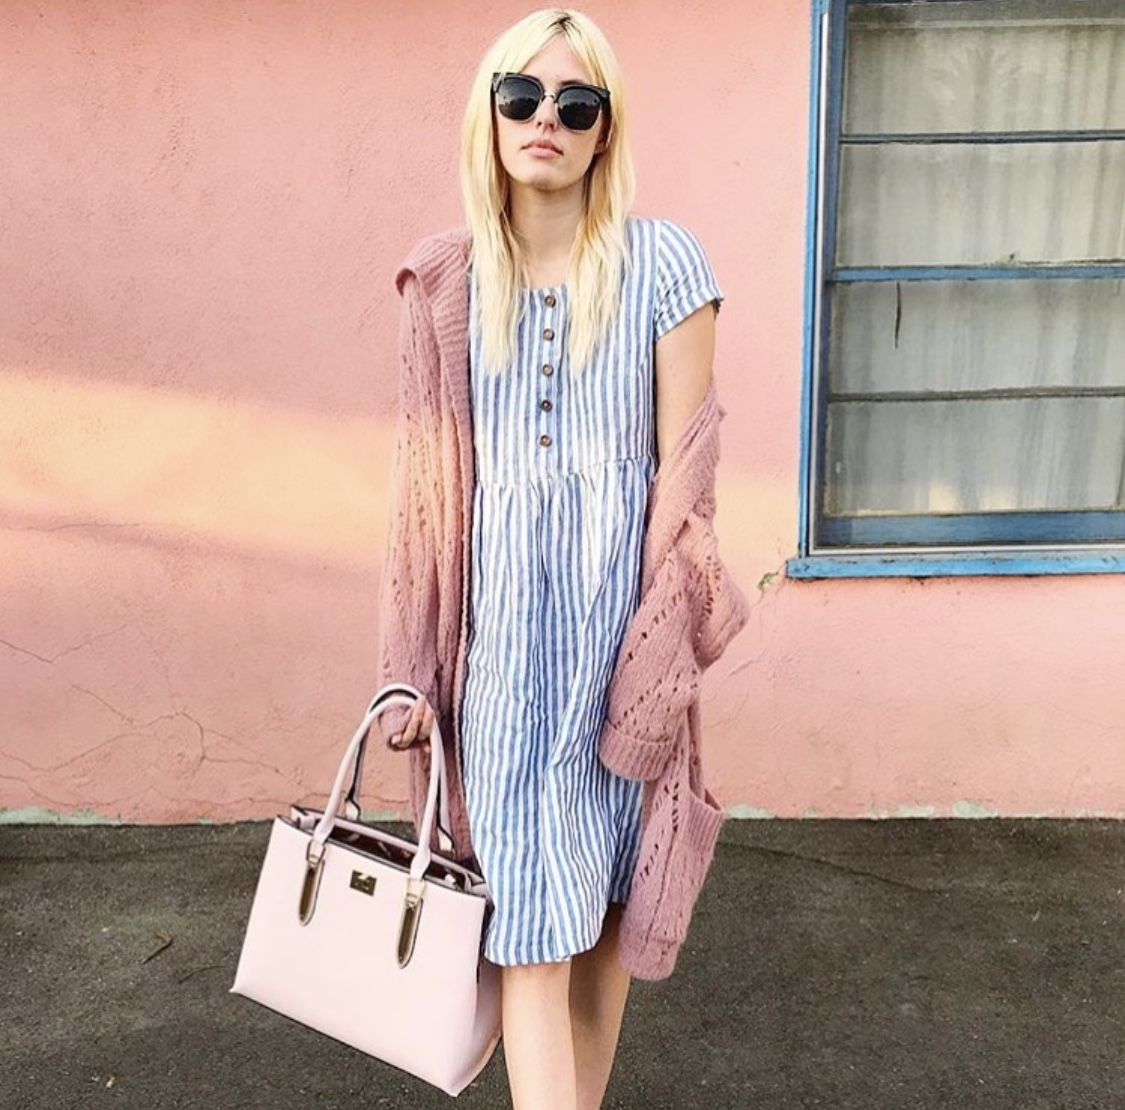 Bags & Cardigans. - Have a patterned dress but not sure how to style it up for a day out? Add a contrasting color cardigan or jacket that has similar color tones to a handbag.It looks chic, it's a classic style and you'll feel like the all powerful boss that you are.Image of @carolineelizabethDress: Model No.11 in Blue stripe LinenCardigan and bag: Models own.